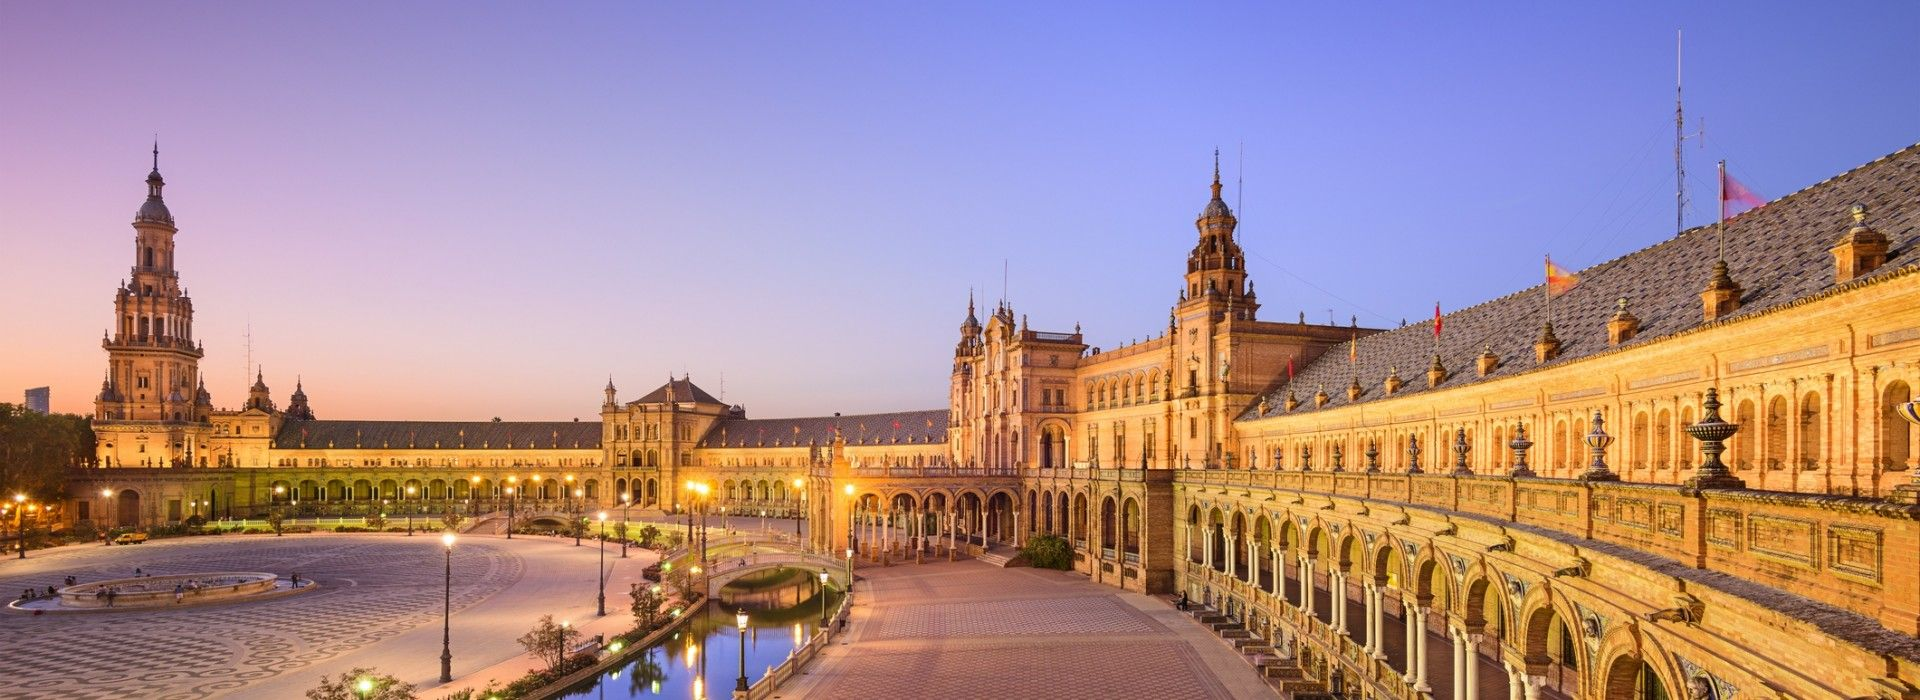 Sightseeing, attractions, culture and history Tours in Spain